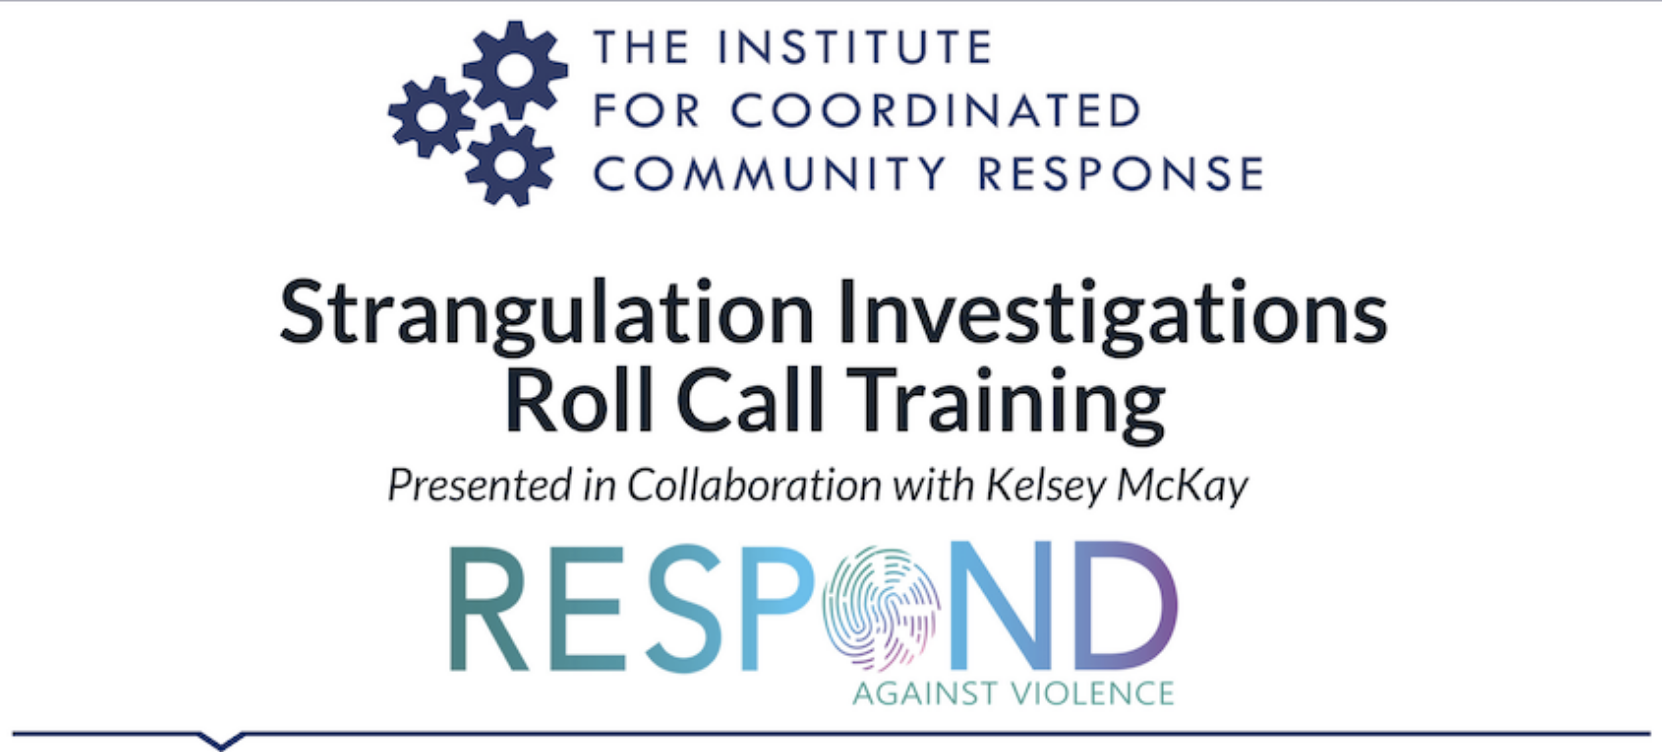 Strangulation Investigations Roll Call Training